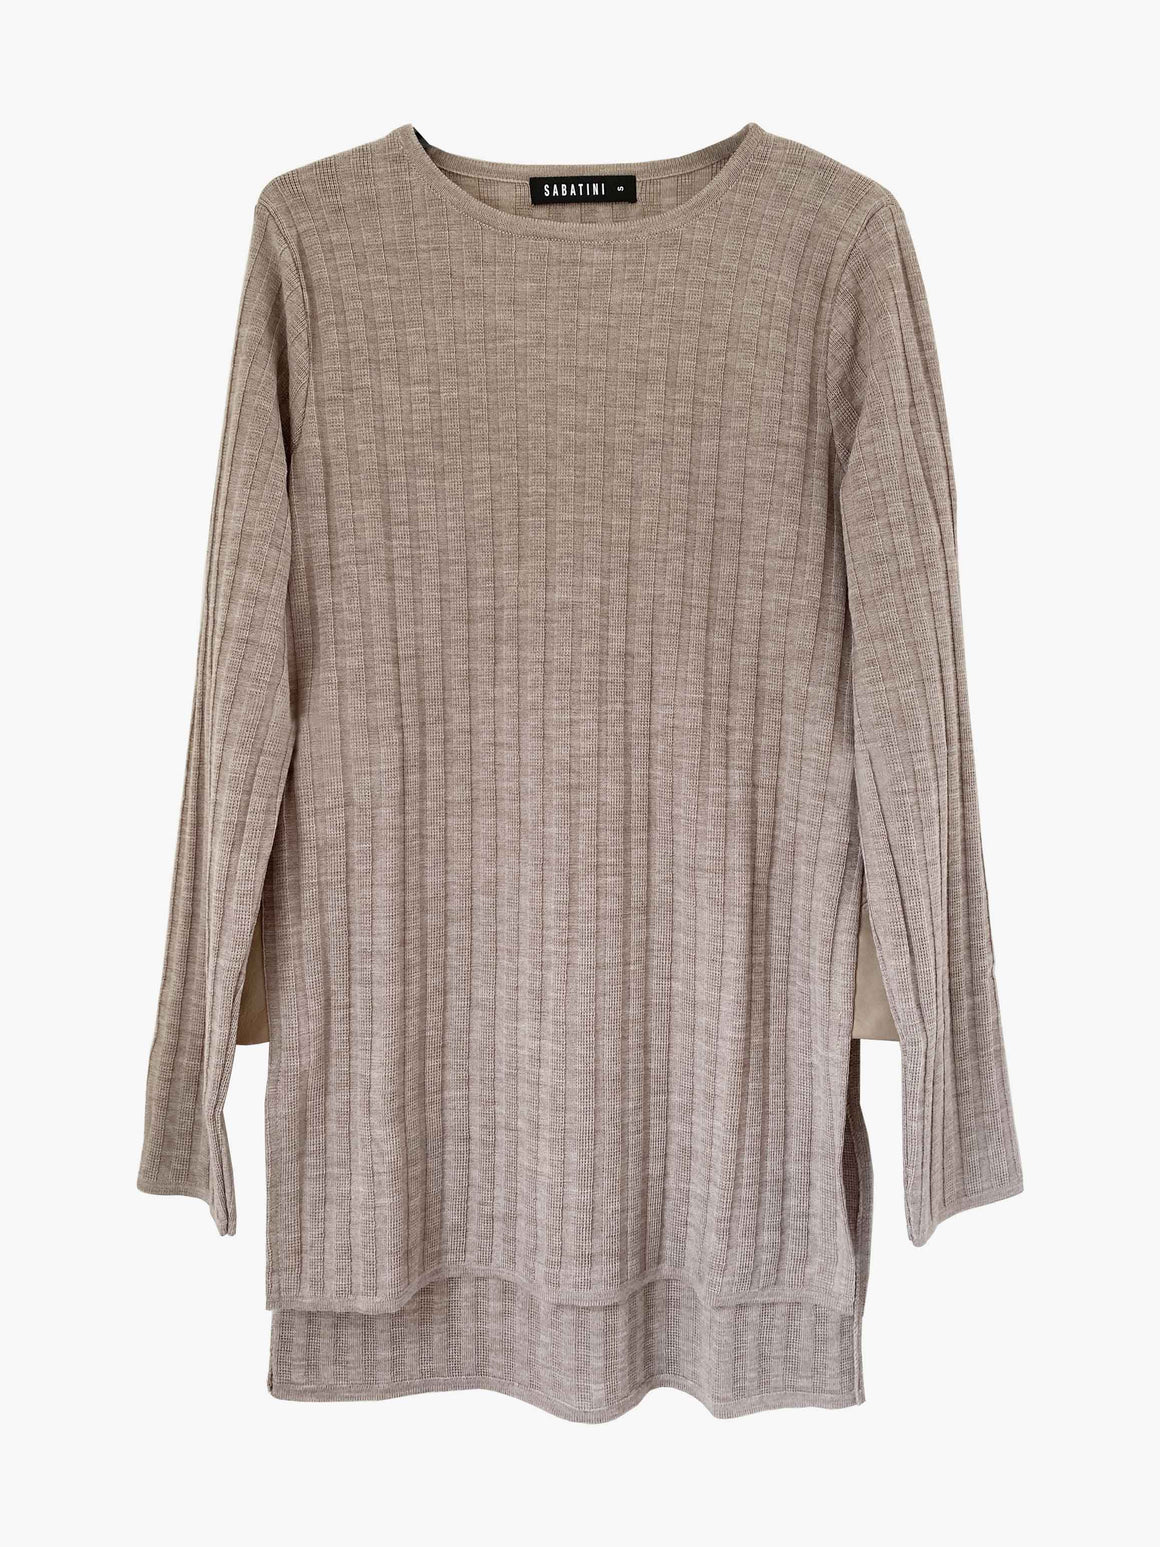 Sabatini Jumper with Leather Side Panels - Latte